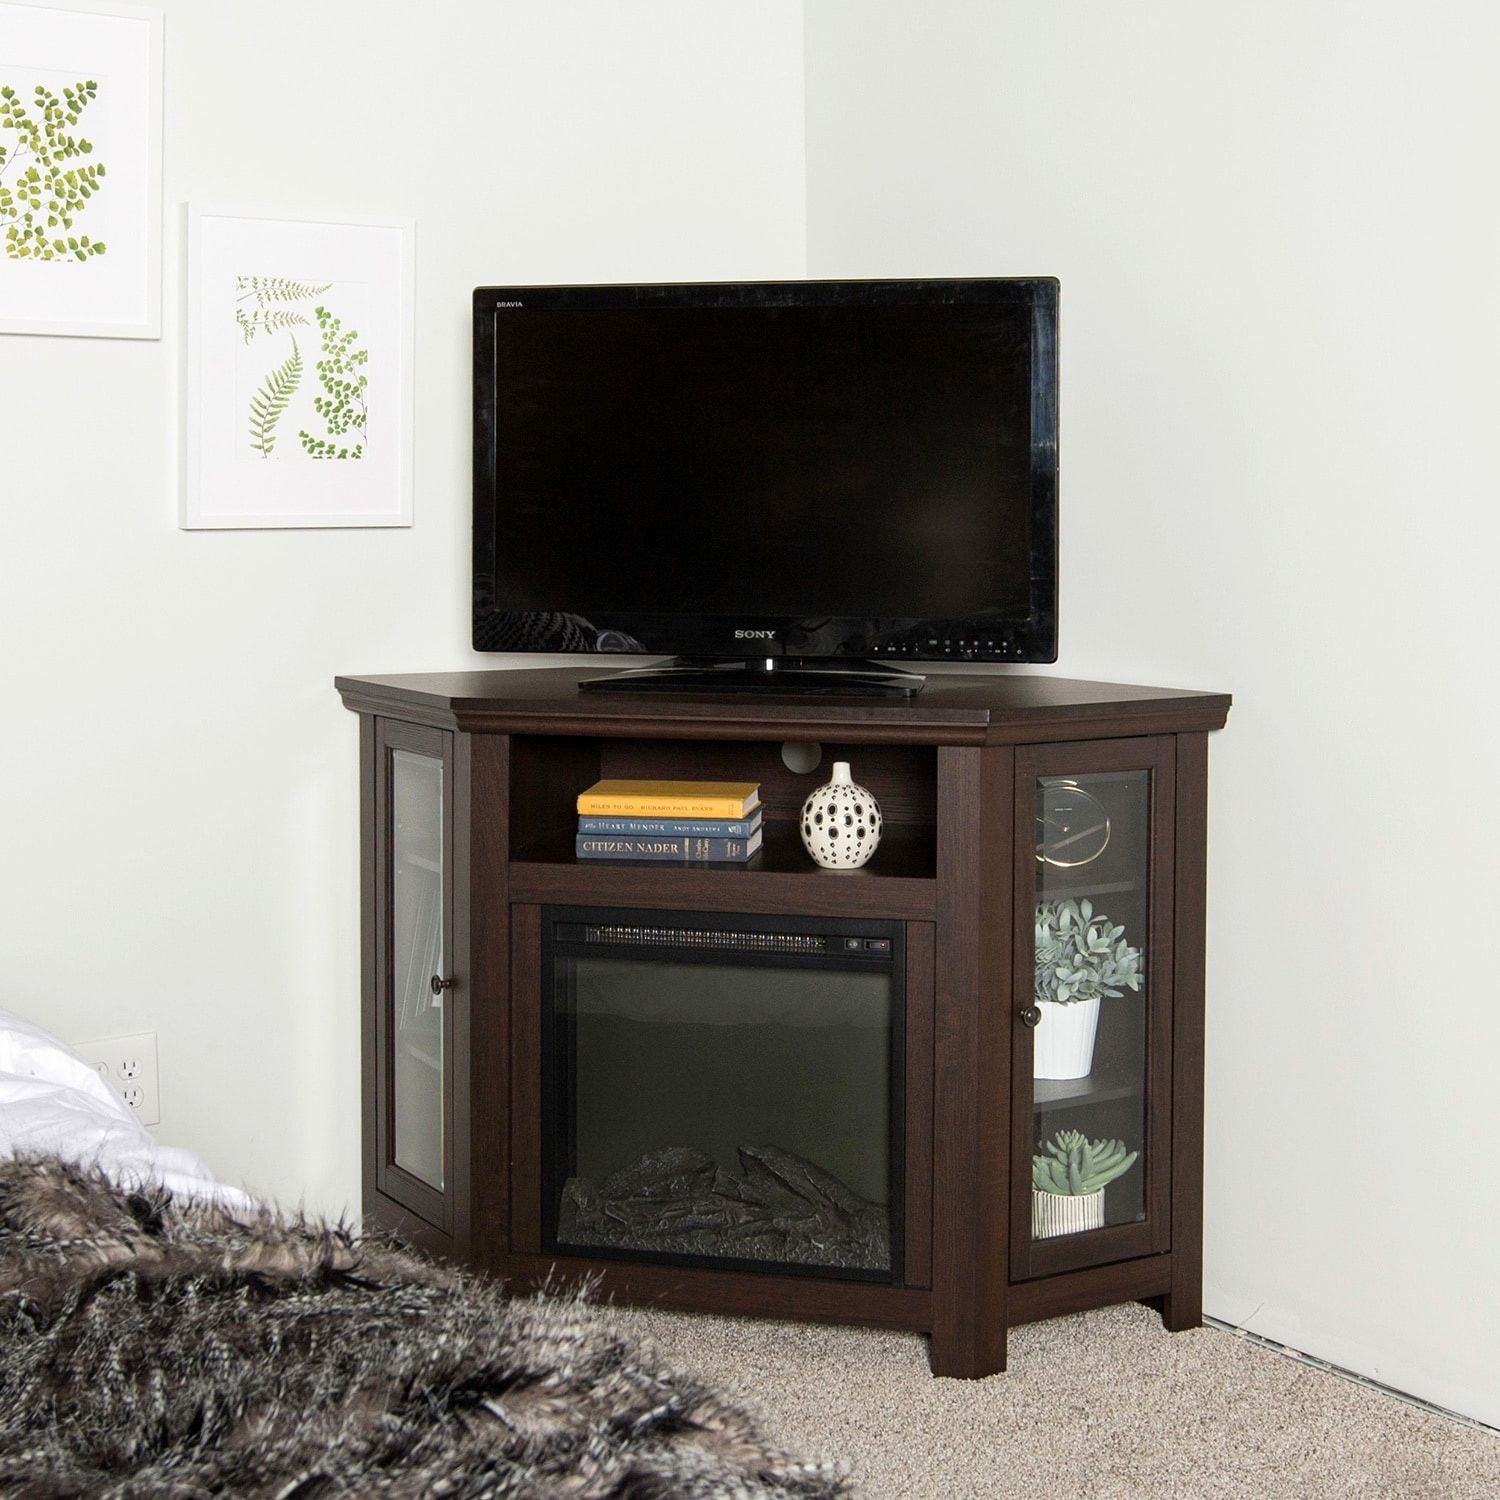 13 Inspirational DIY TV Stand Ideas for Your Room Home